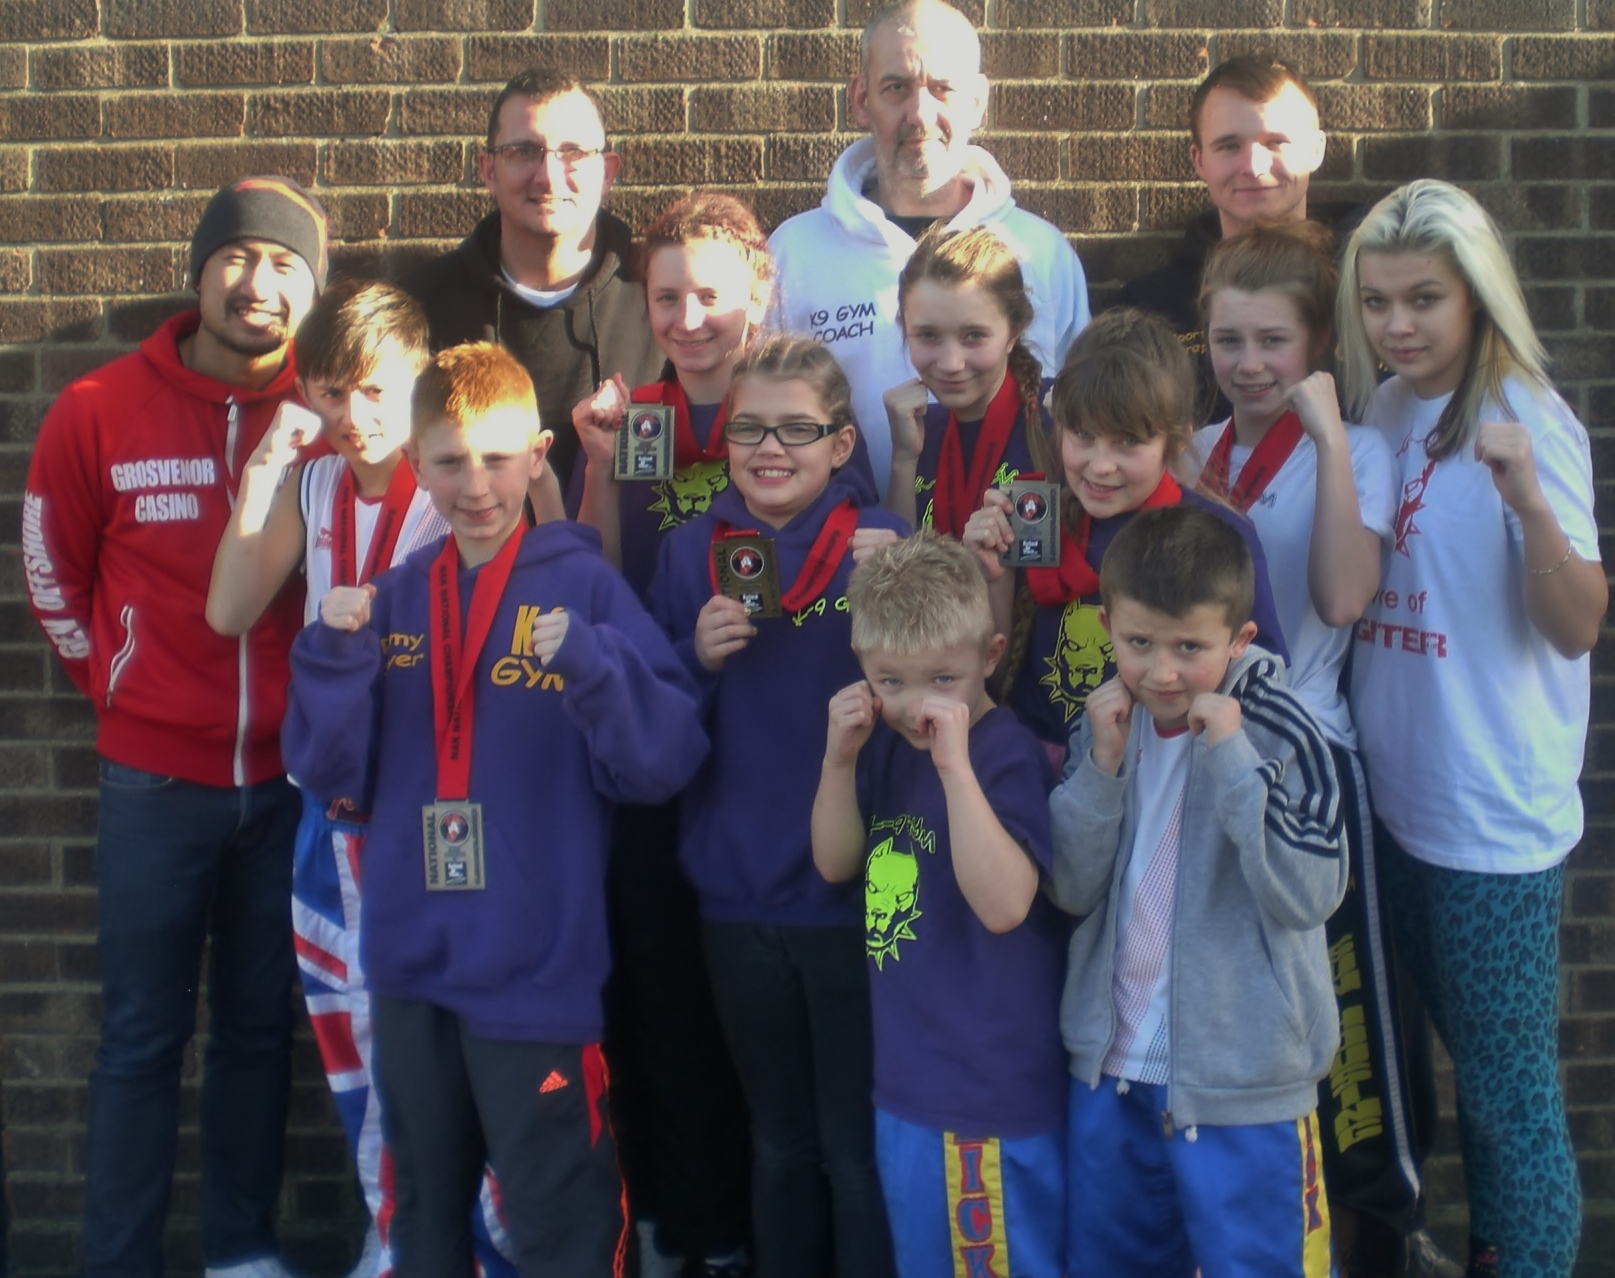 K.9's winning team with proud coaches